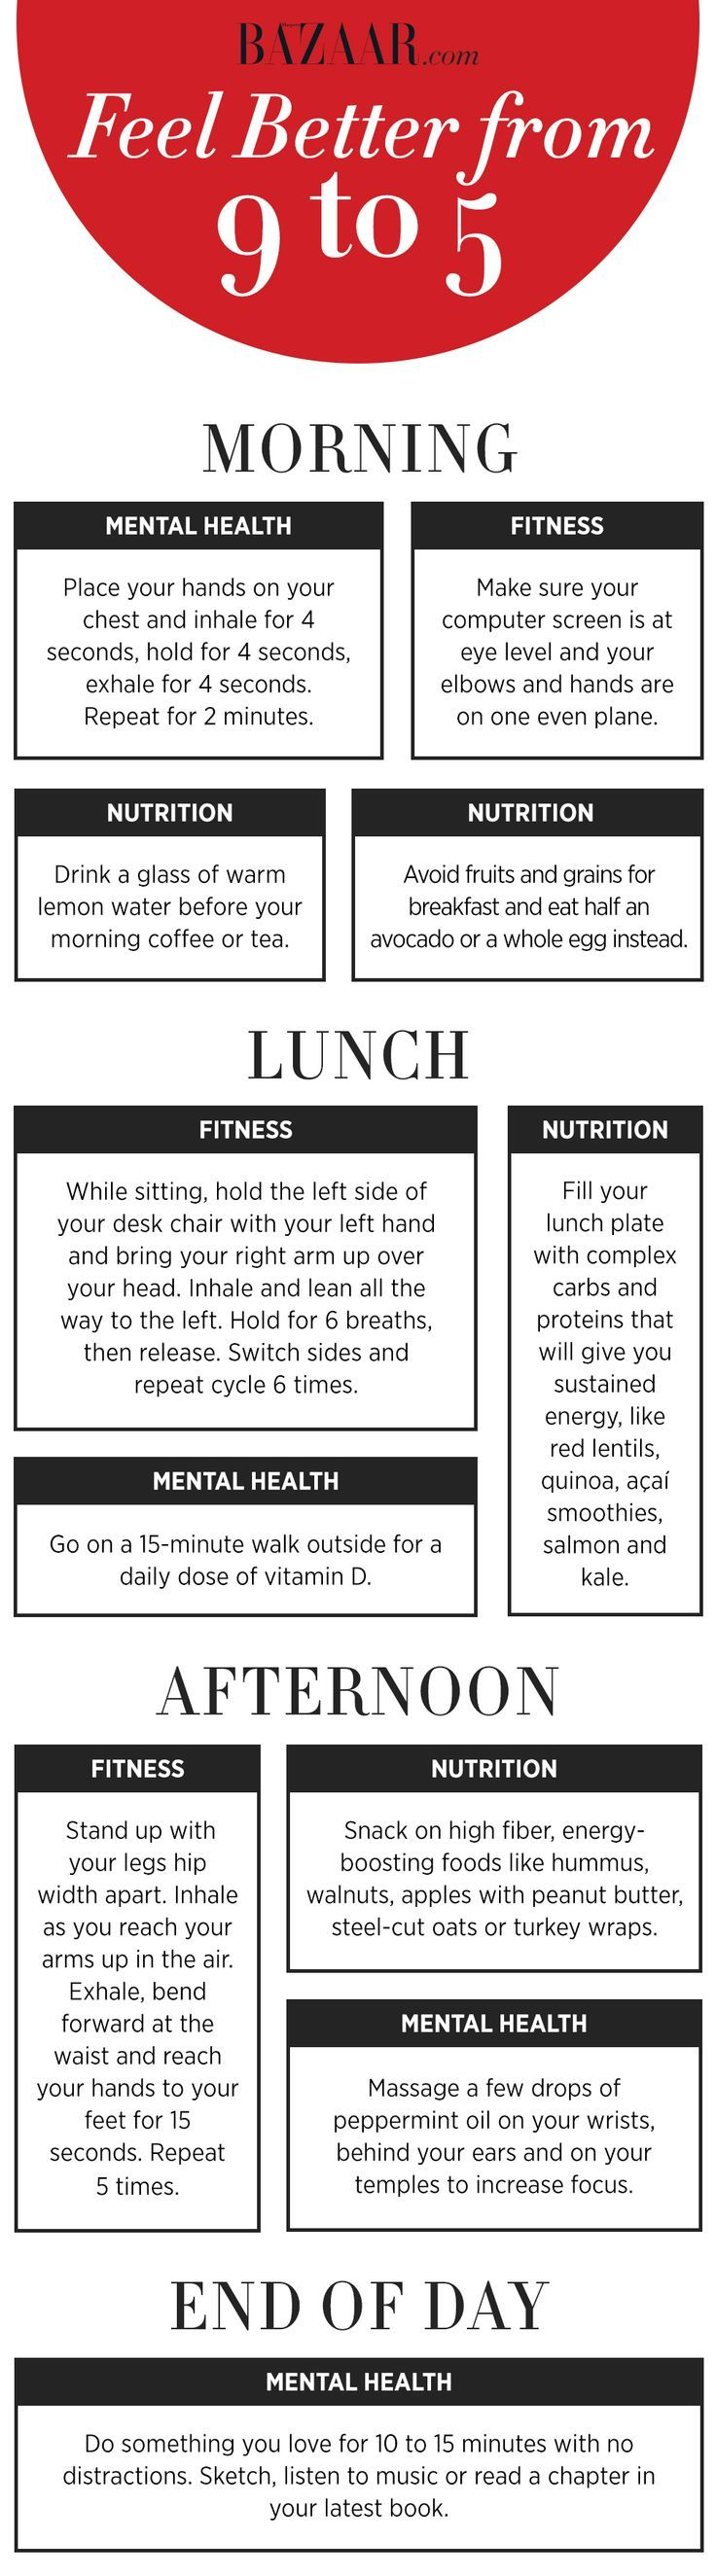 How to get more energy throughout the day and feel better in the office. Follow this healthy daily routine